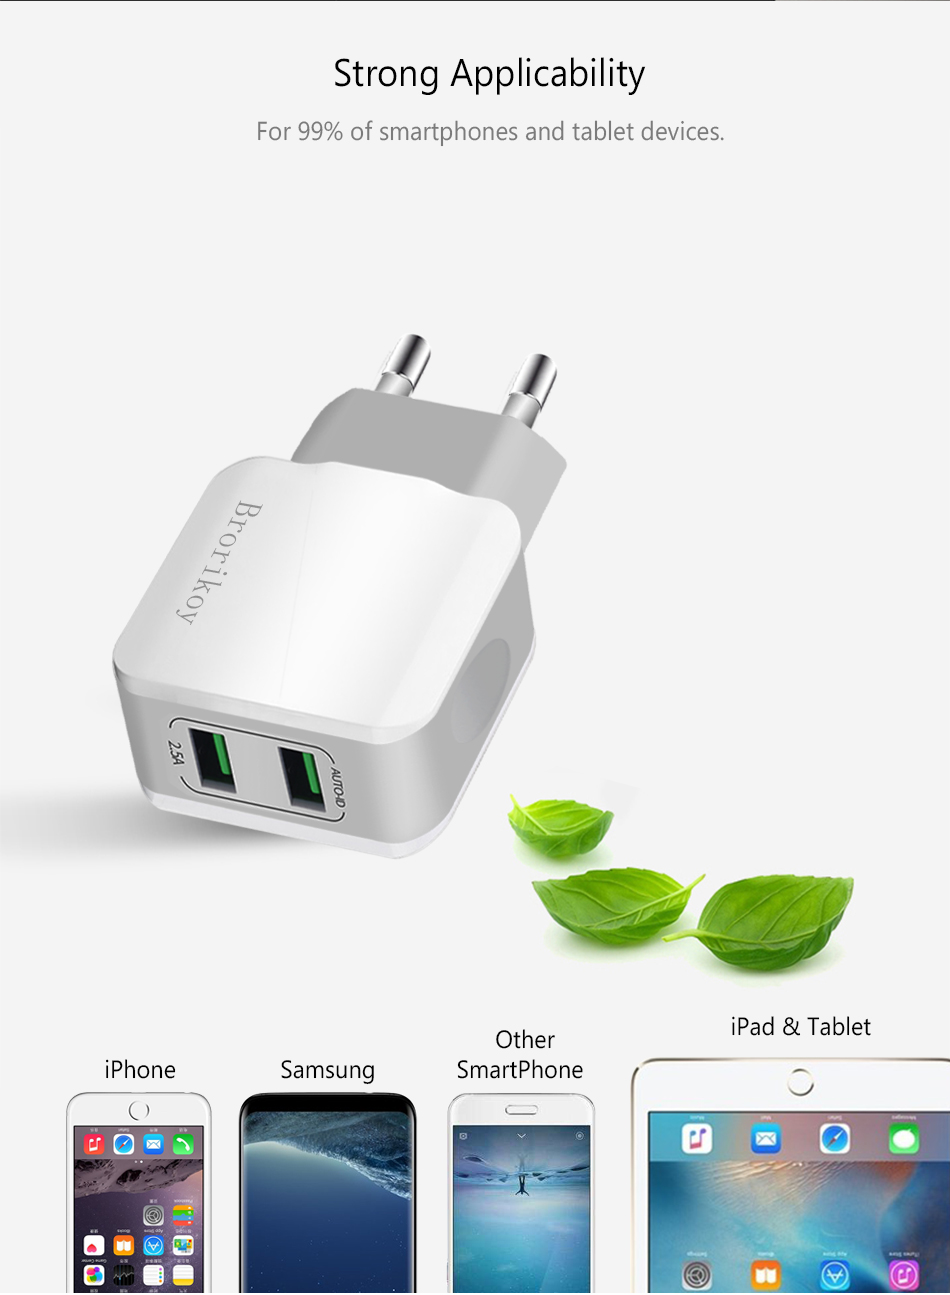 Usb Wall Charger For Iphone Samsung 5 6 7 8 Edge Plus Adapter Charging System Wiring And Main Power Supply Circuit Ndash 2006 Aprilia Rs125 Offers Fast Efficient High Efficiency Low Energy Consumption Protective To Prevent Overcharging